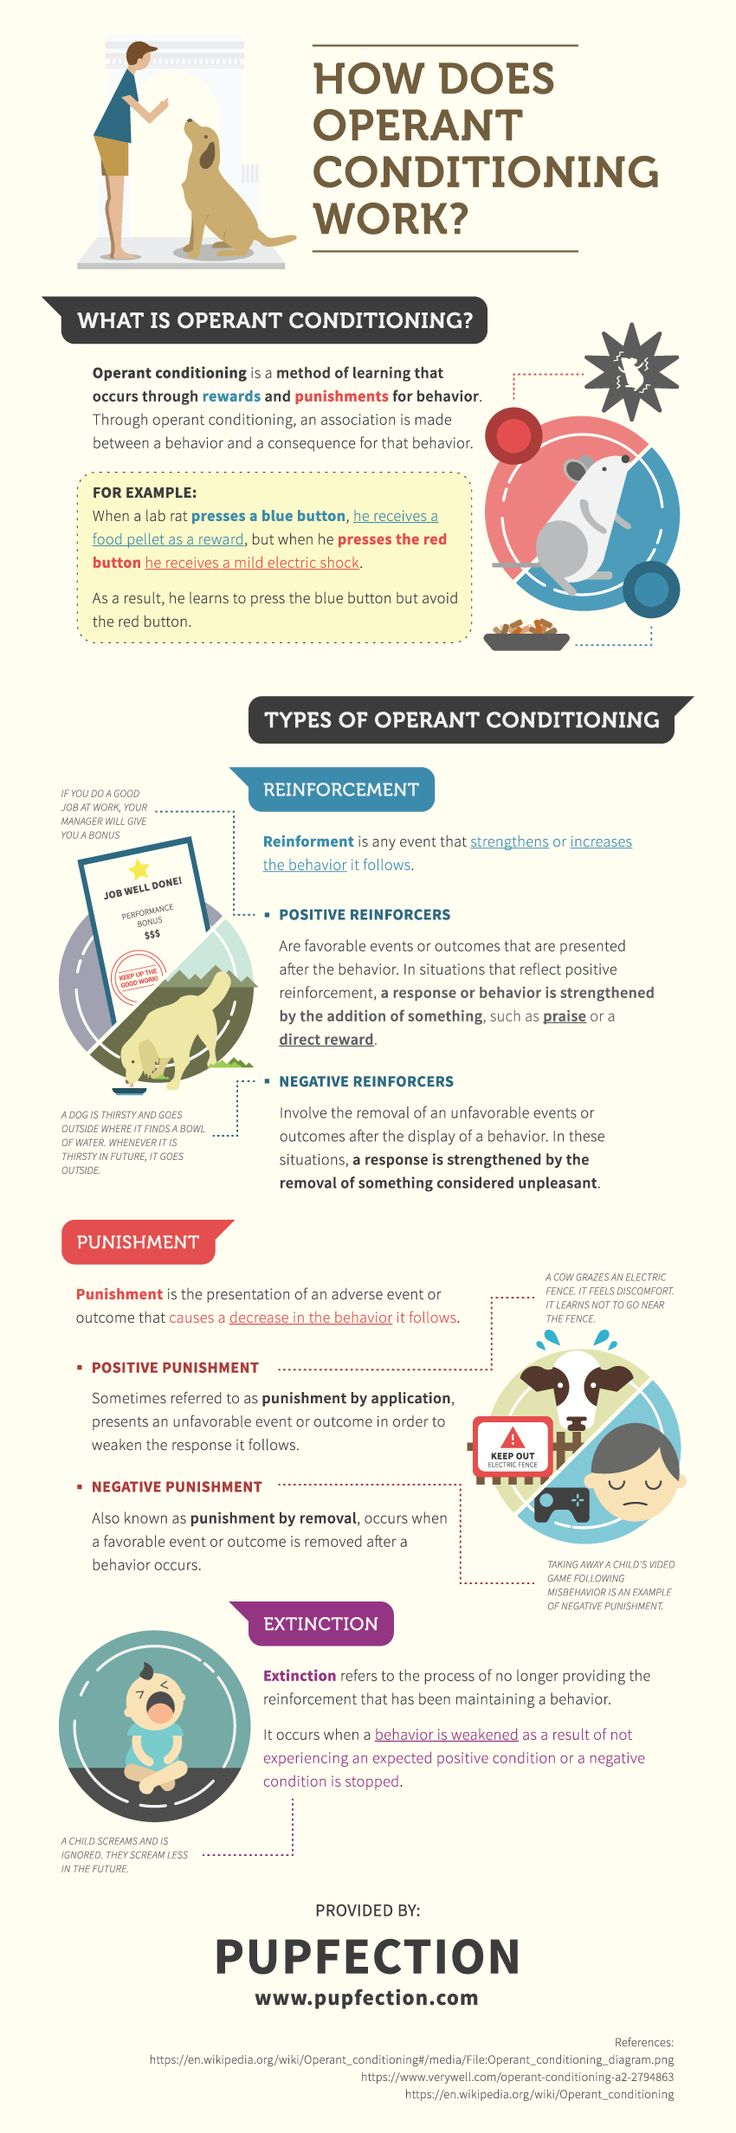 How does operant conditioning work